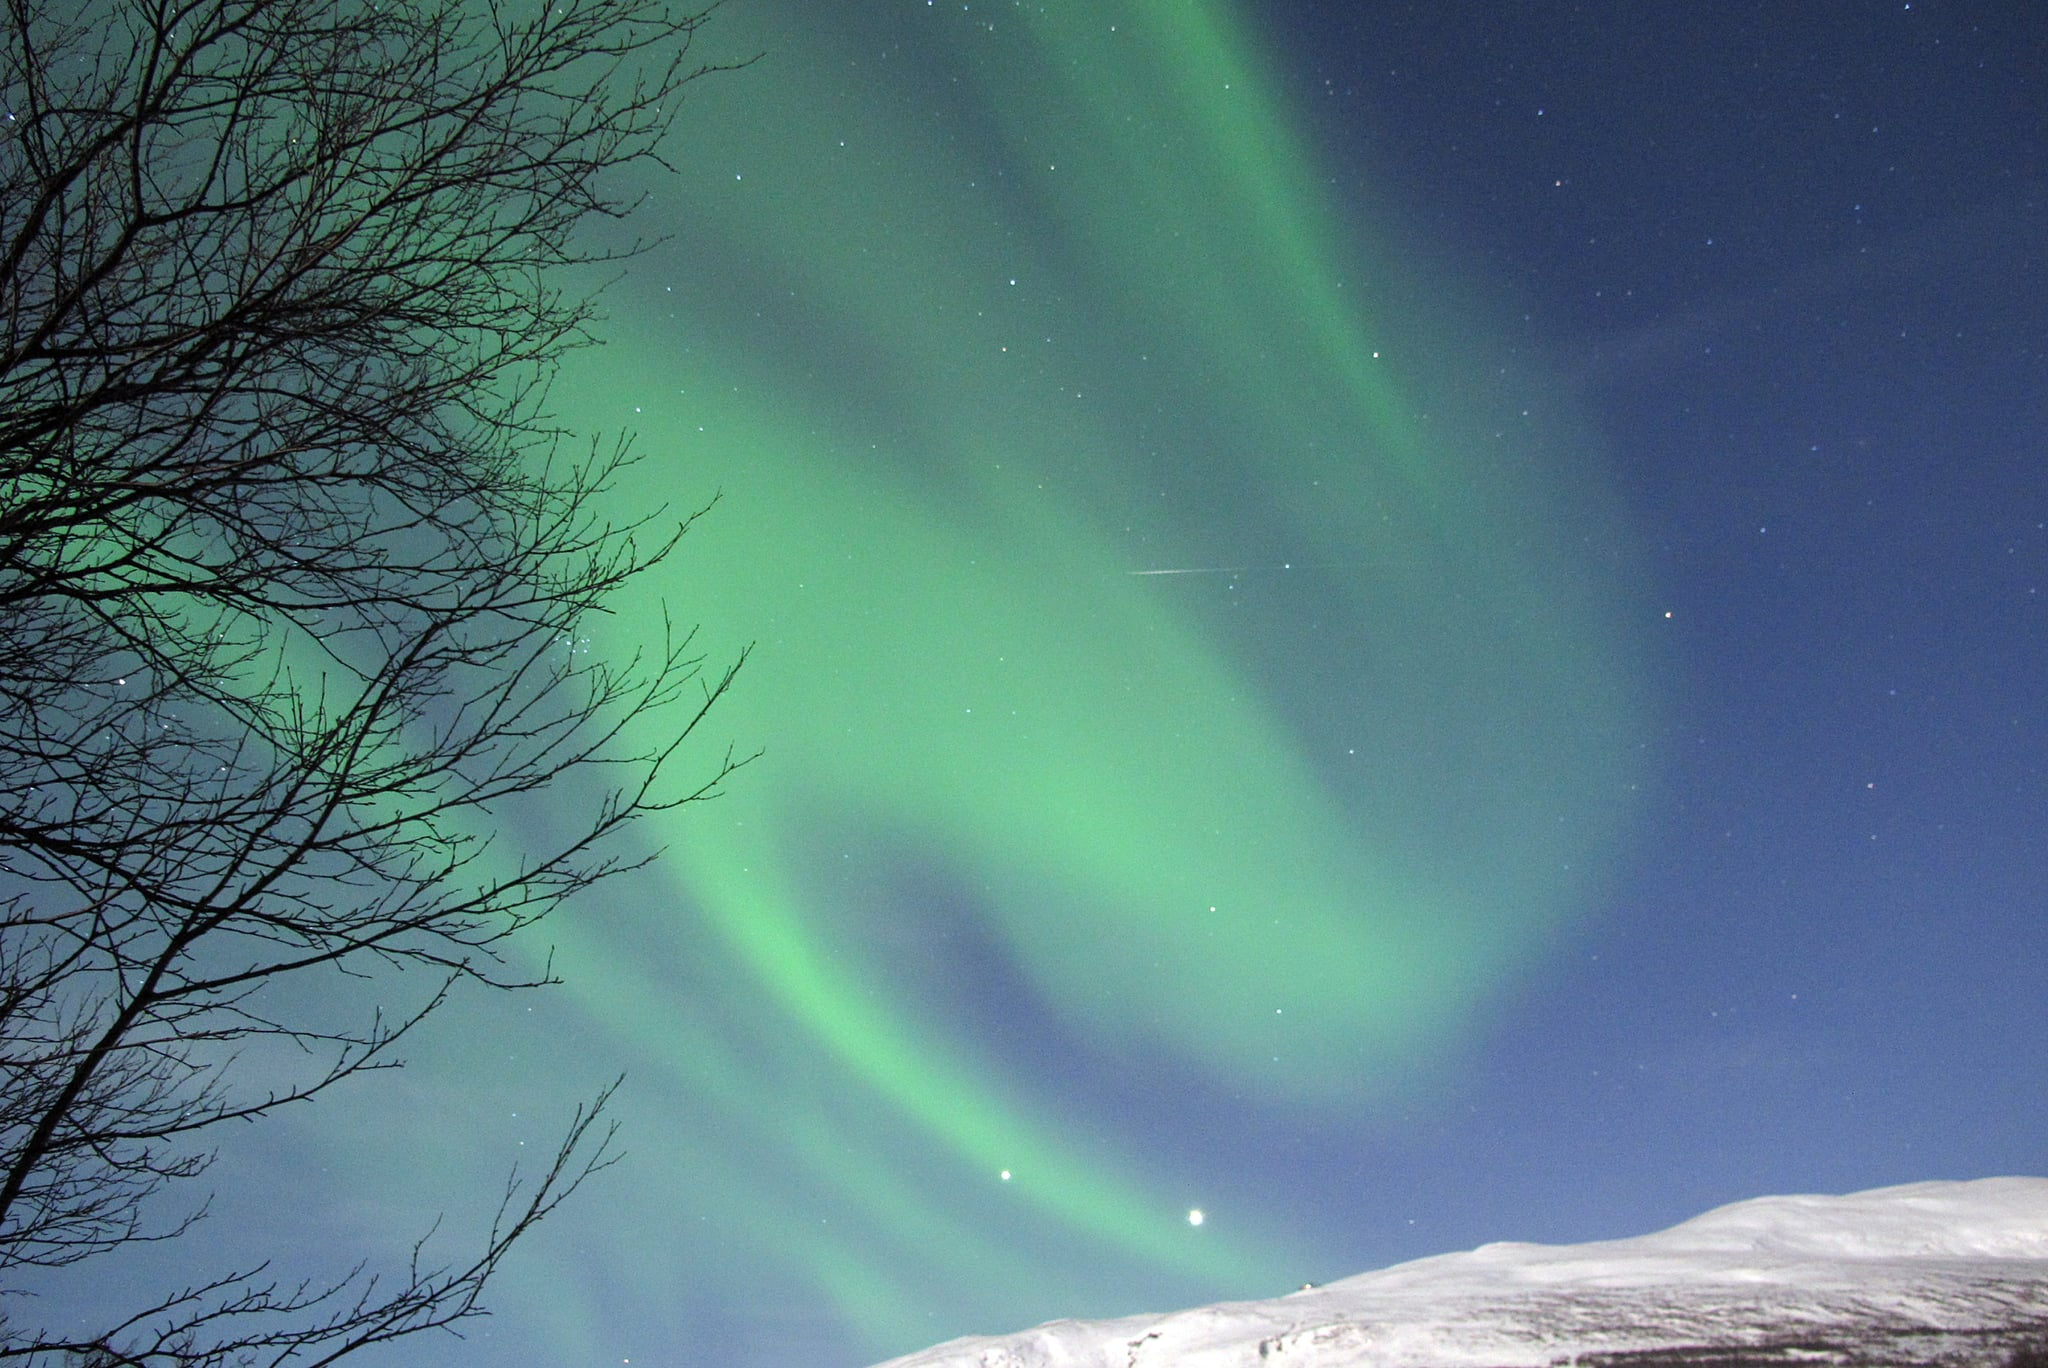 A picture taken in Abisko, Sweden, in March 2012 showed a beautiful view of the aurora borealis.